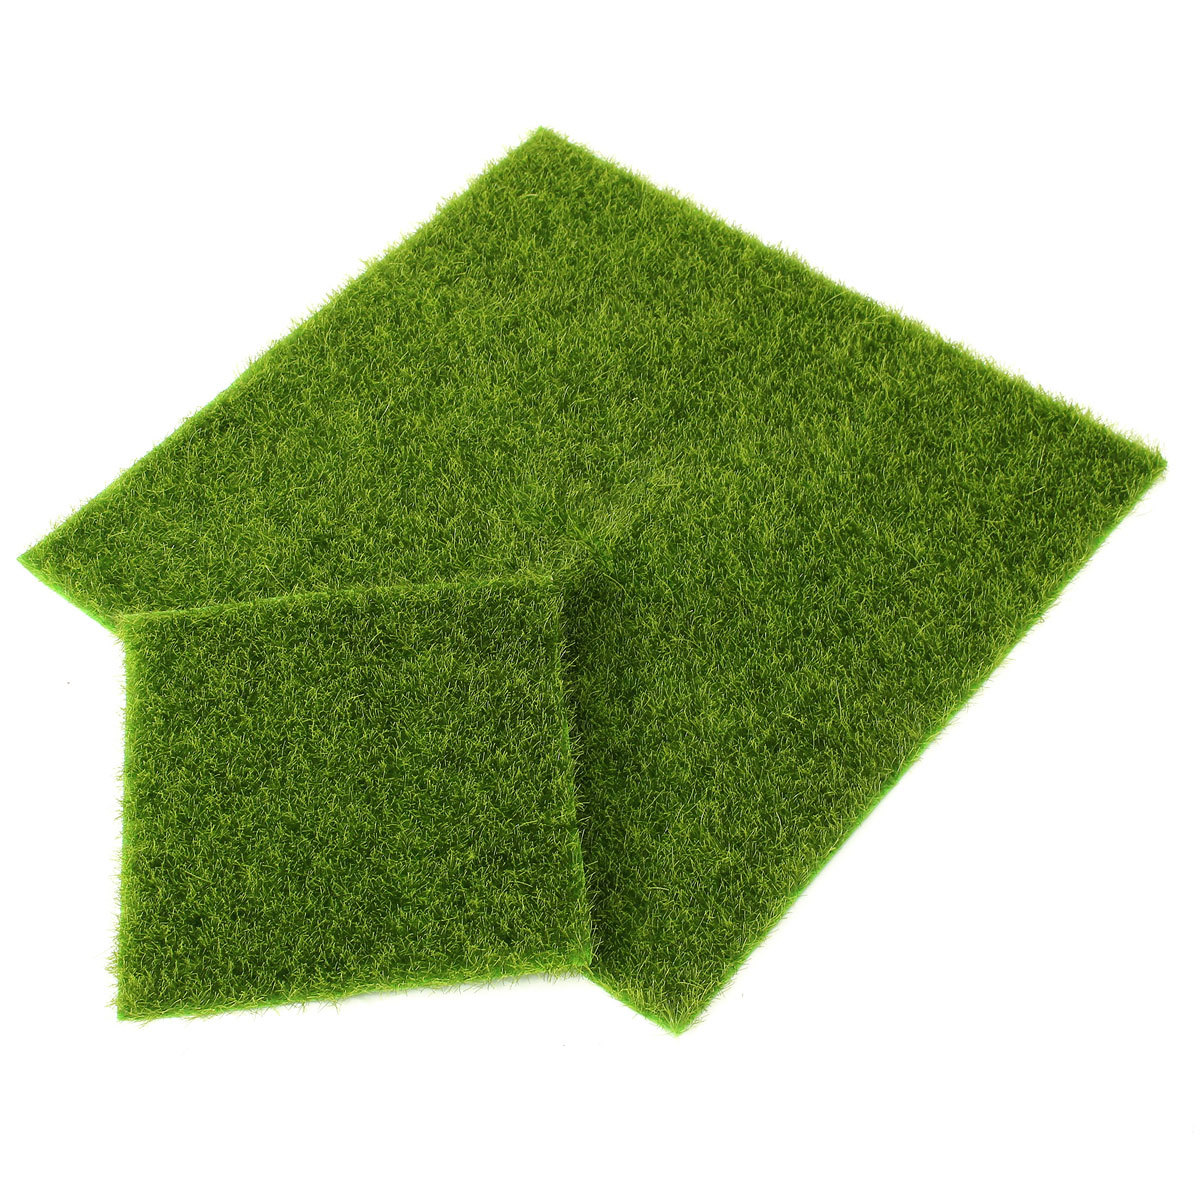 Artificial grass fake lawn turf landscape garden ornament for Faux grass for crafts